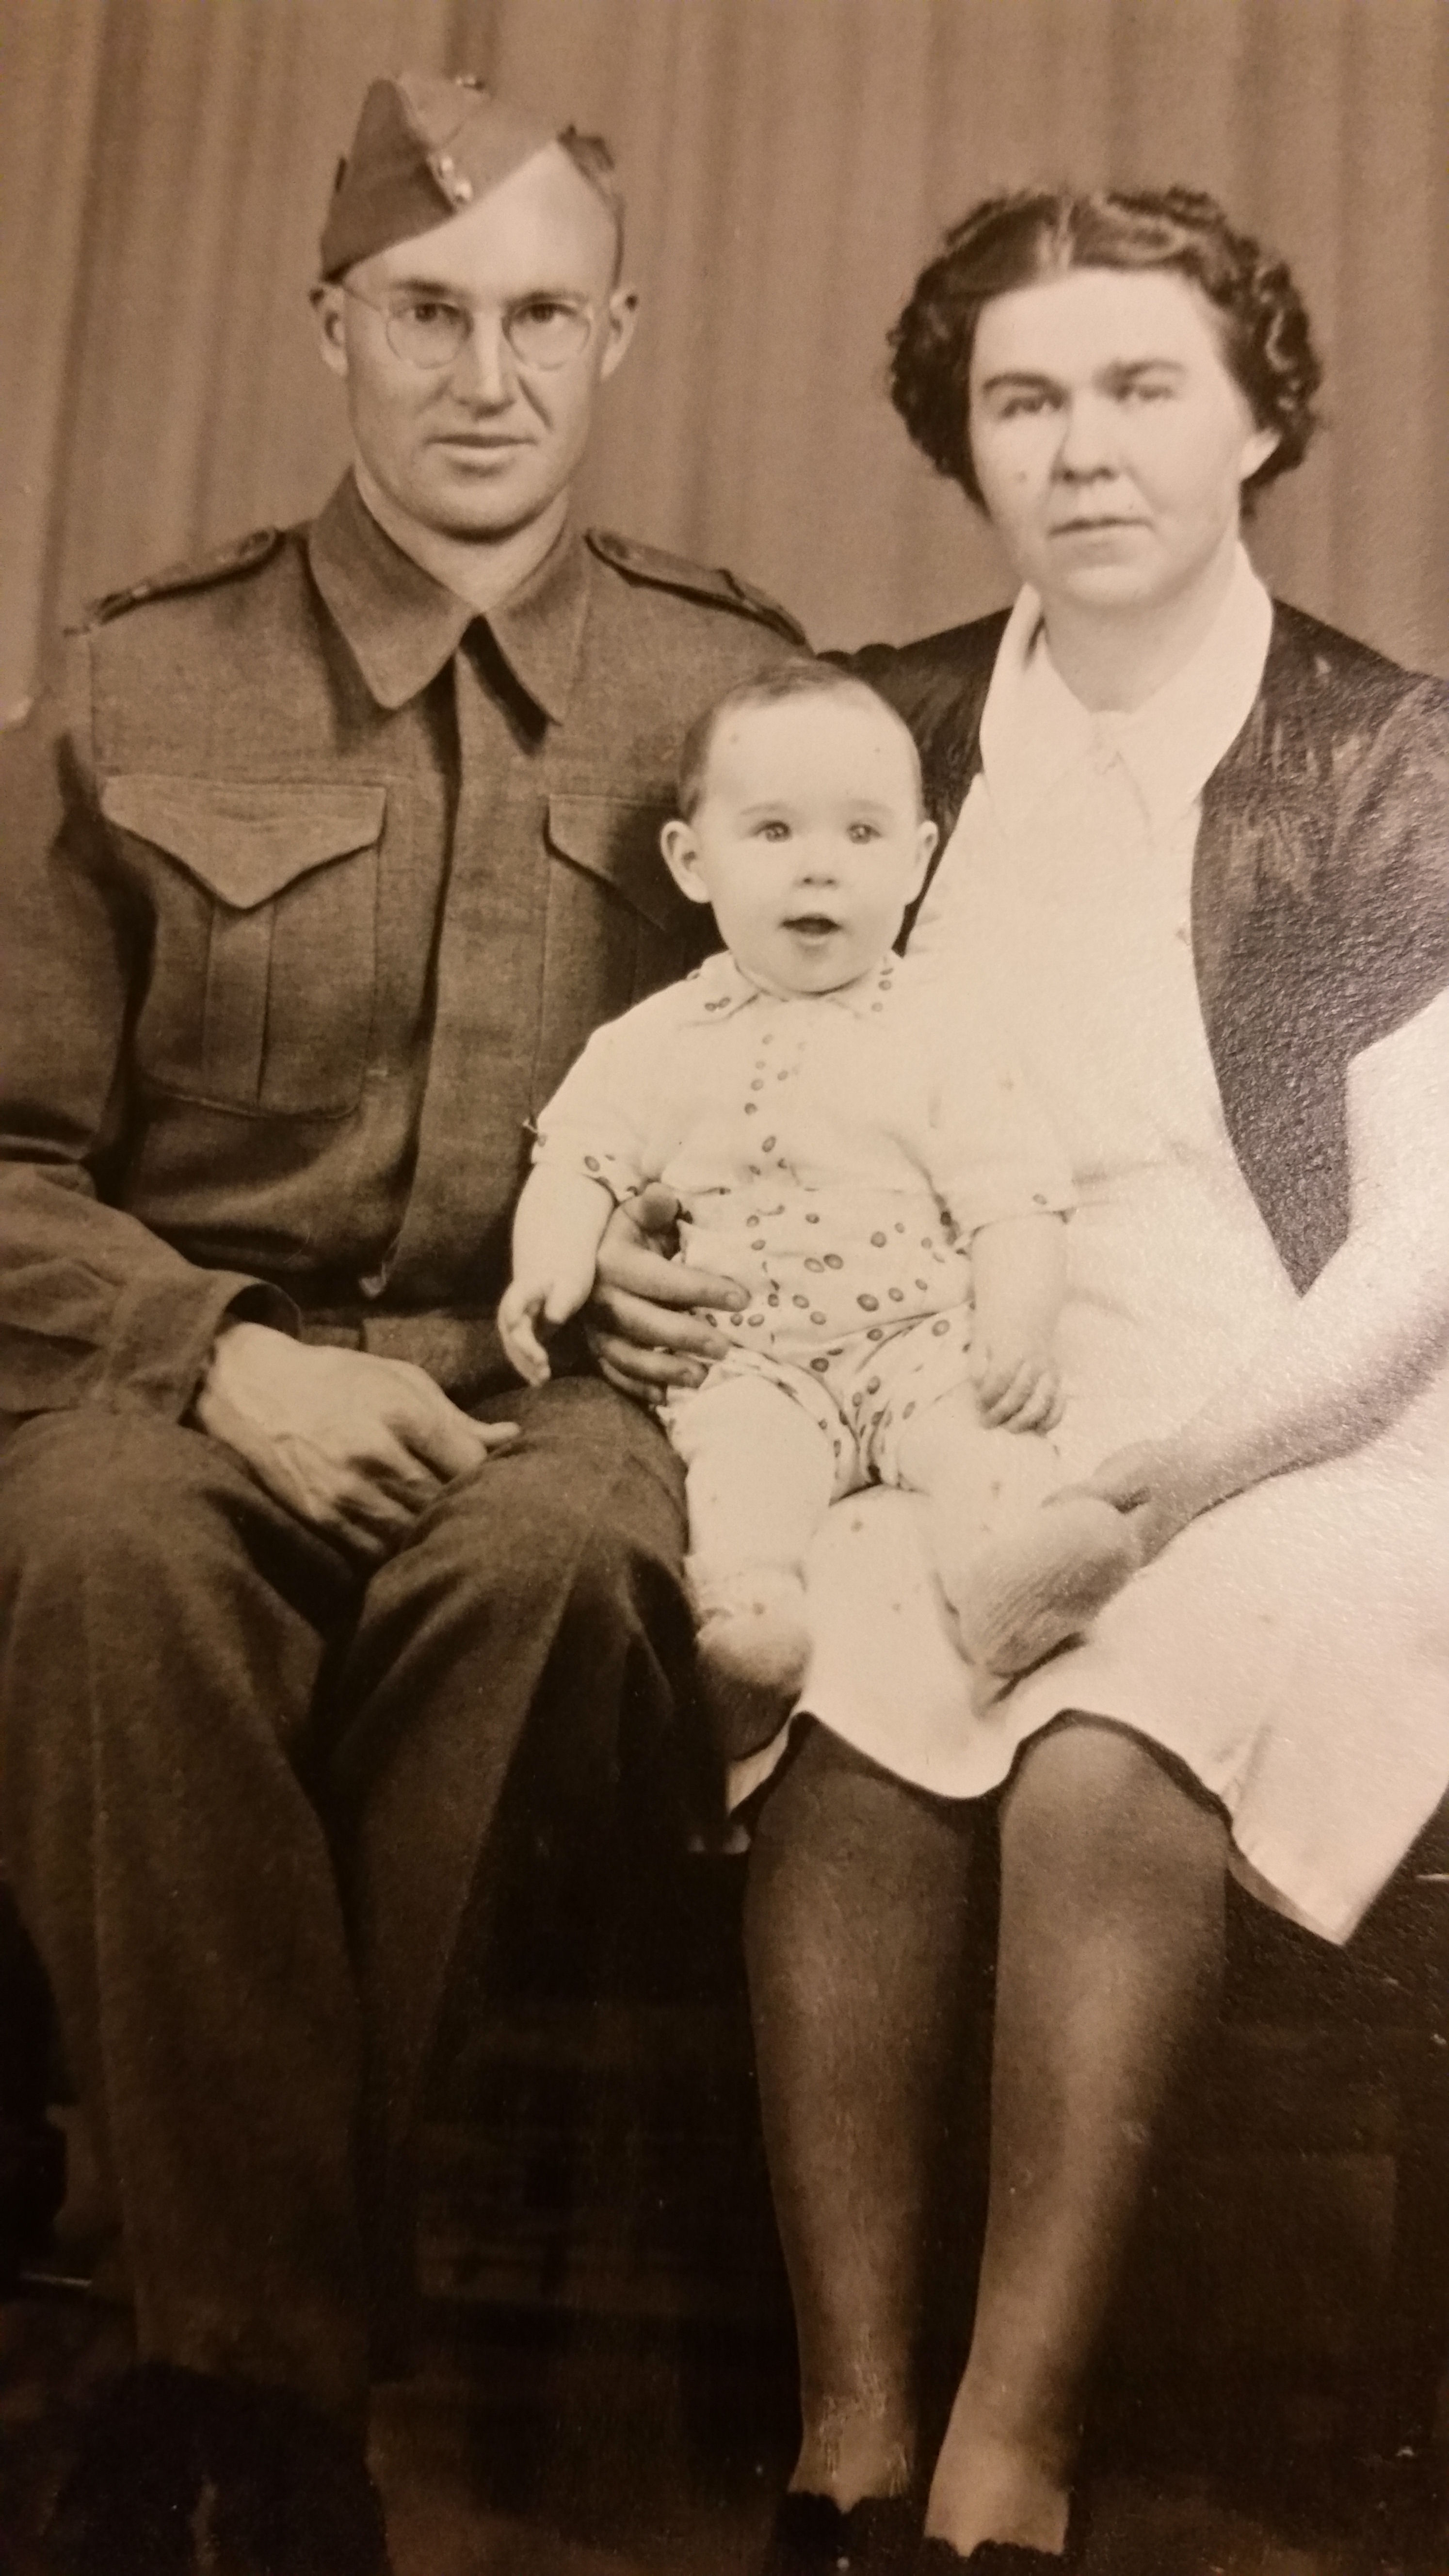 Family photo– Last family photo of Private Richard Boyce Hatt with wife Lydia (Putishkin) Hatt and their only son Alexander William Hatt.  Taken in 1942 shortly before Private Hatt was depoyed.